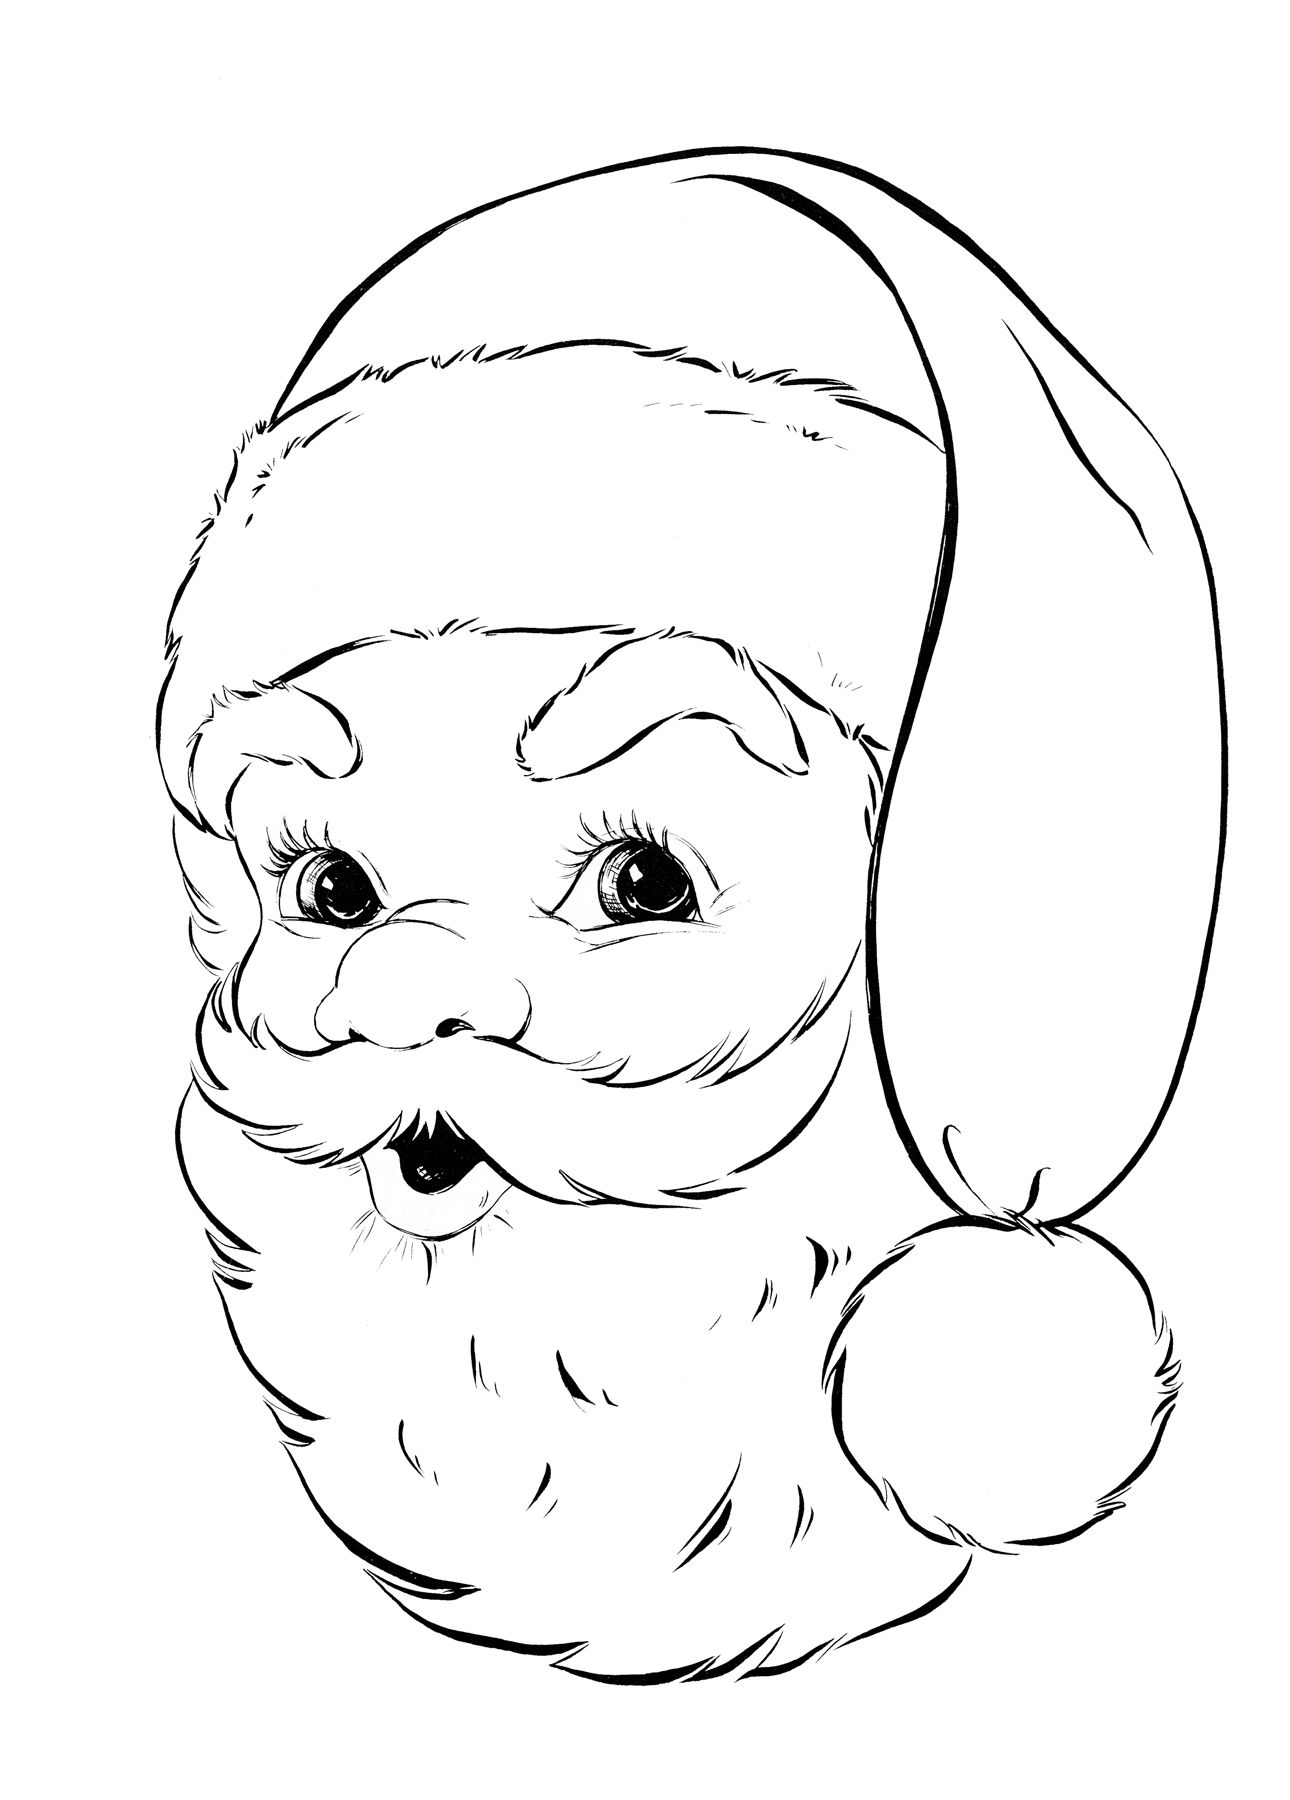 Vintage Santa Coloring Page With 50 Free Activities For Children Digi Stamps Pinterest